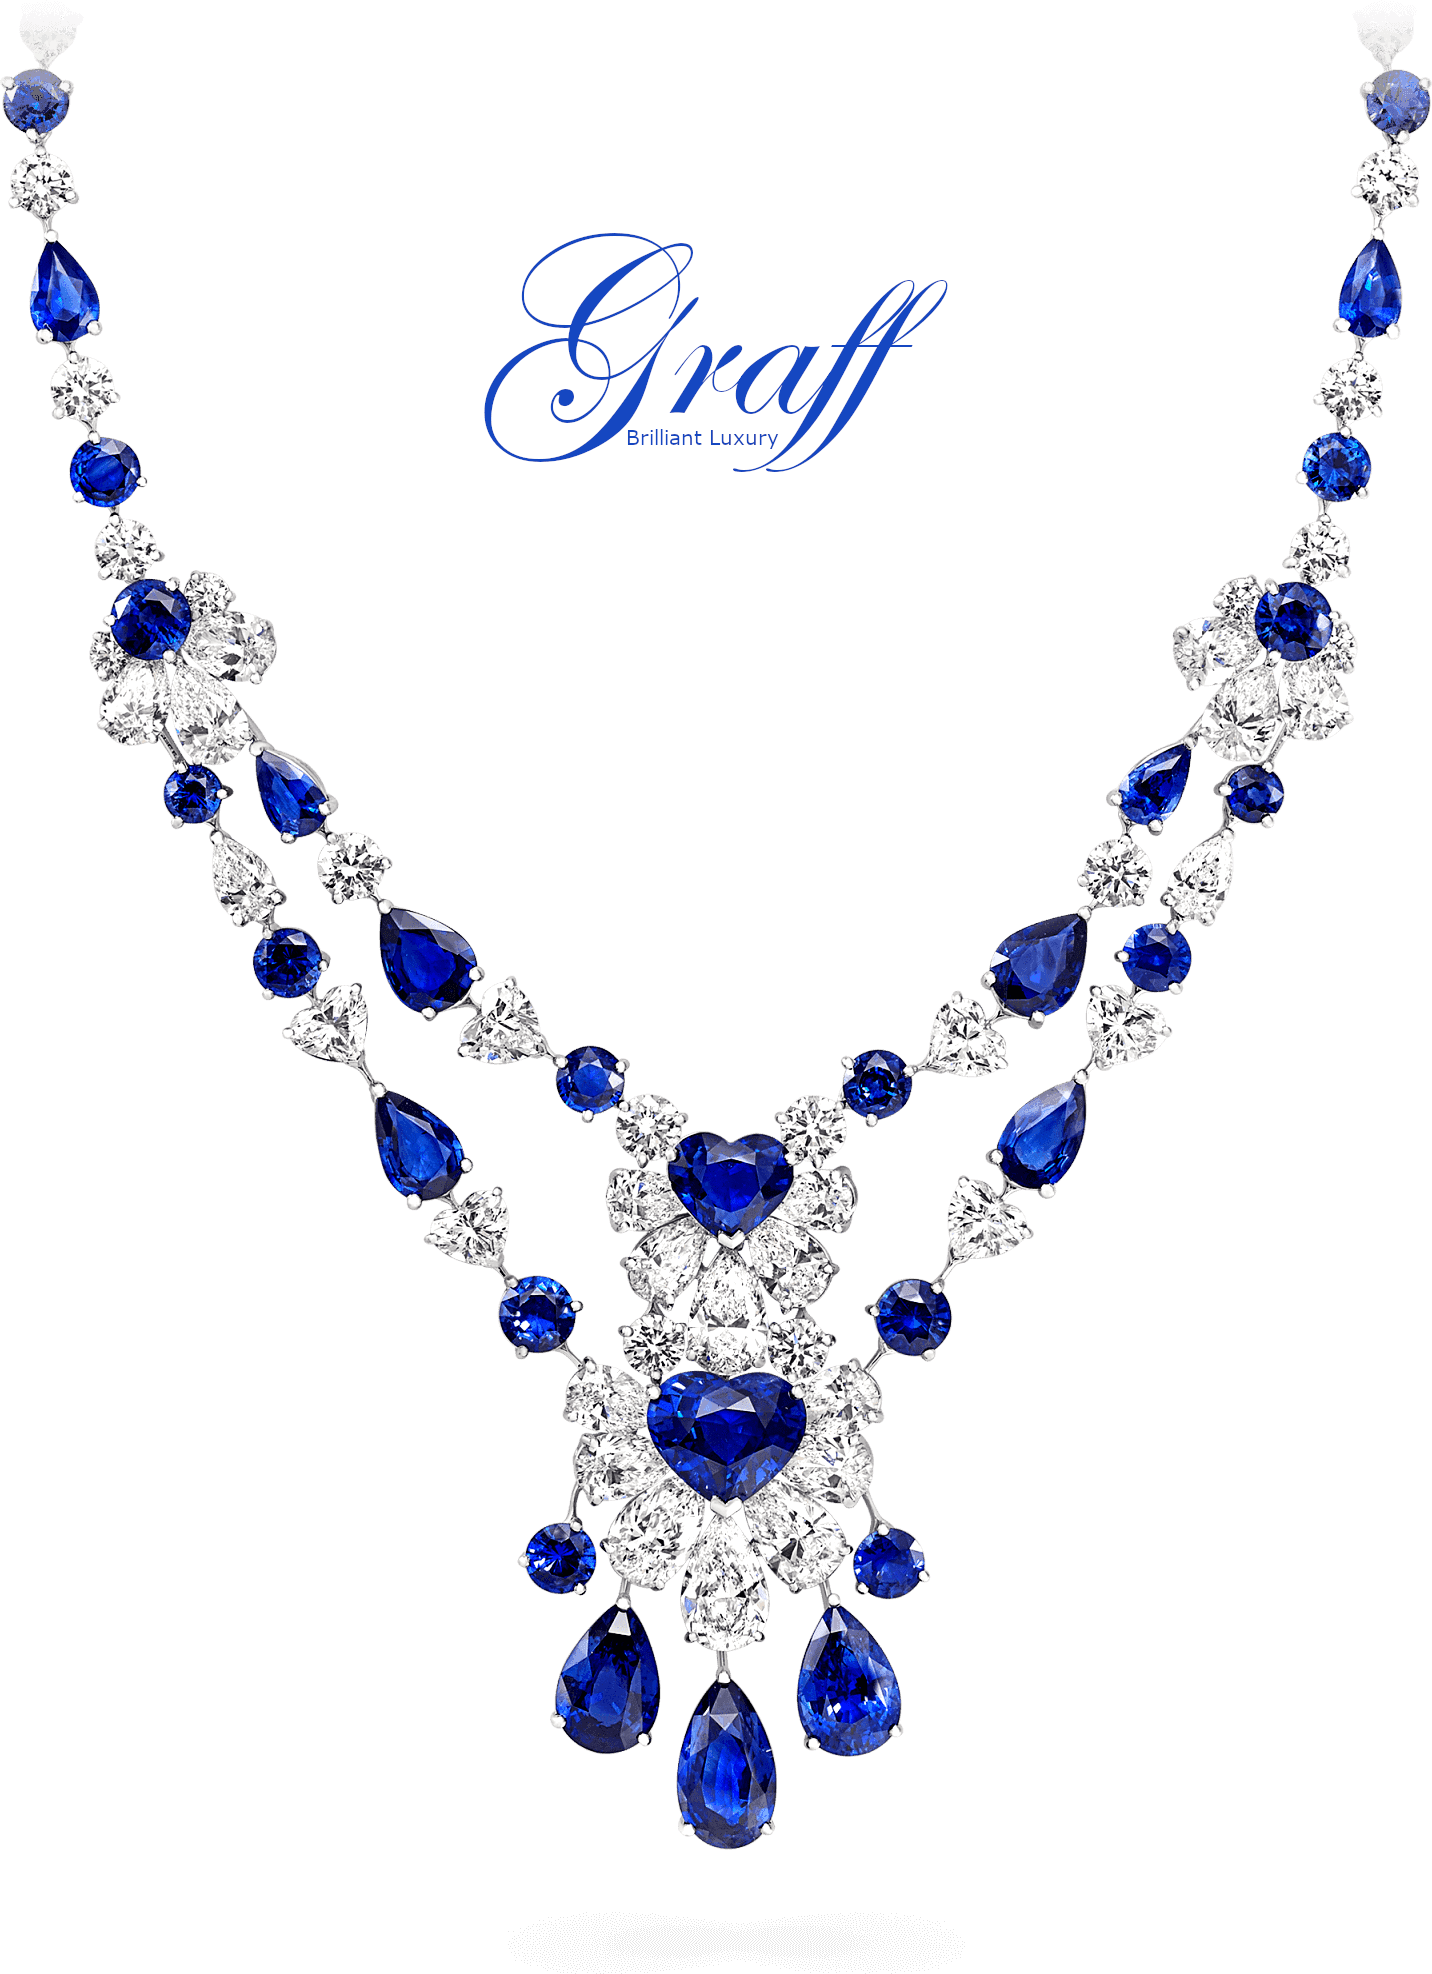 Graff sapphires and diamond necklace